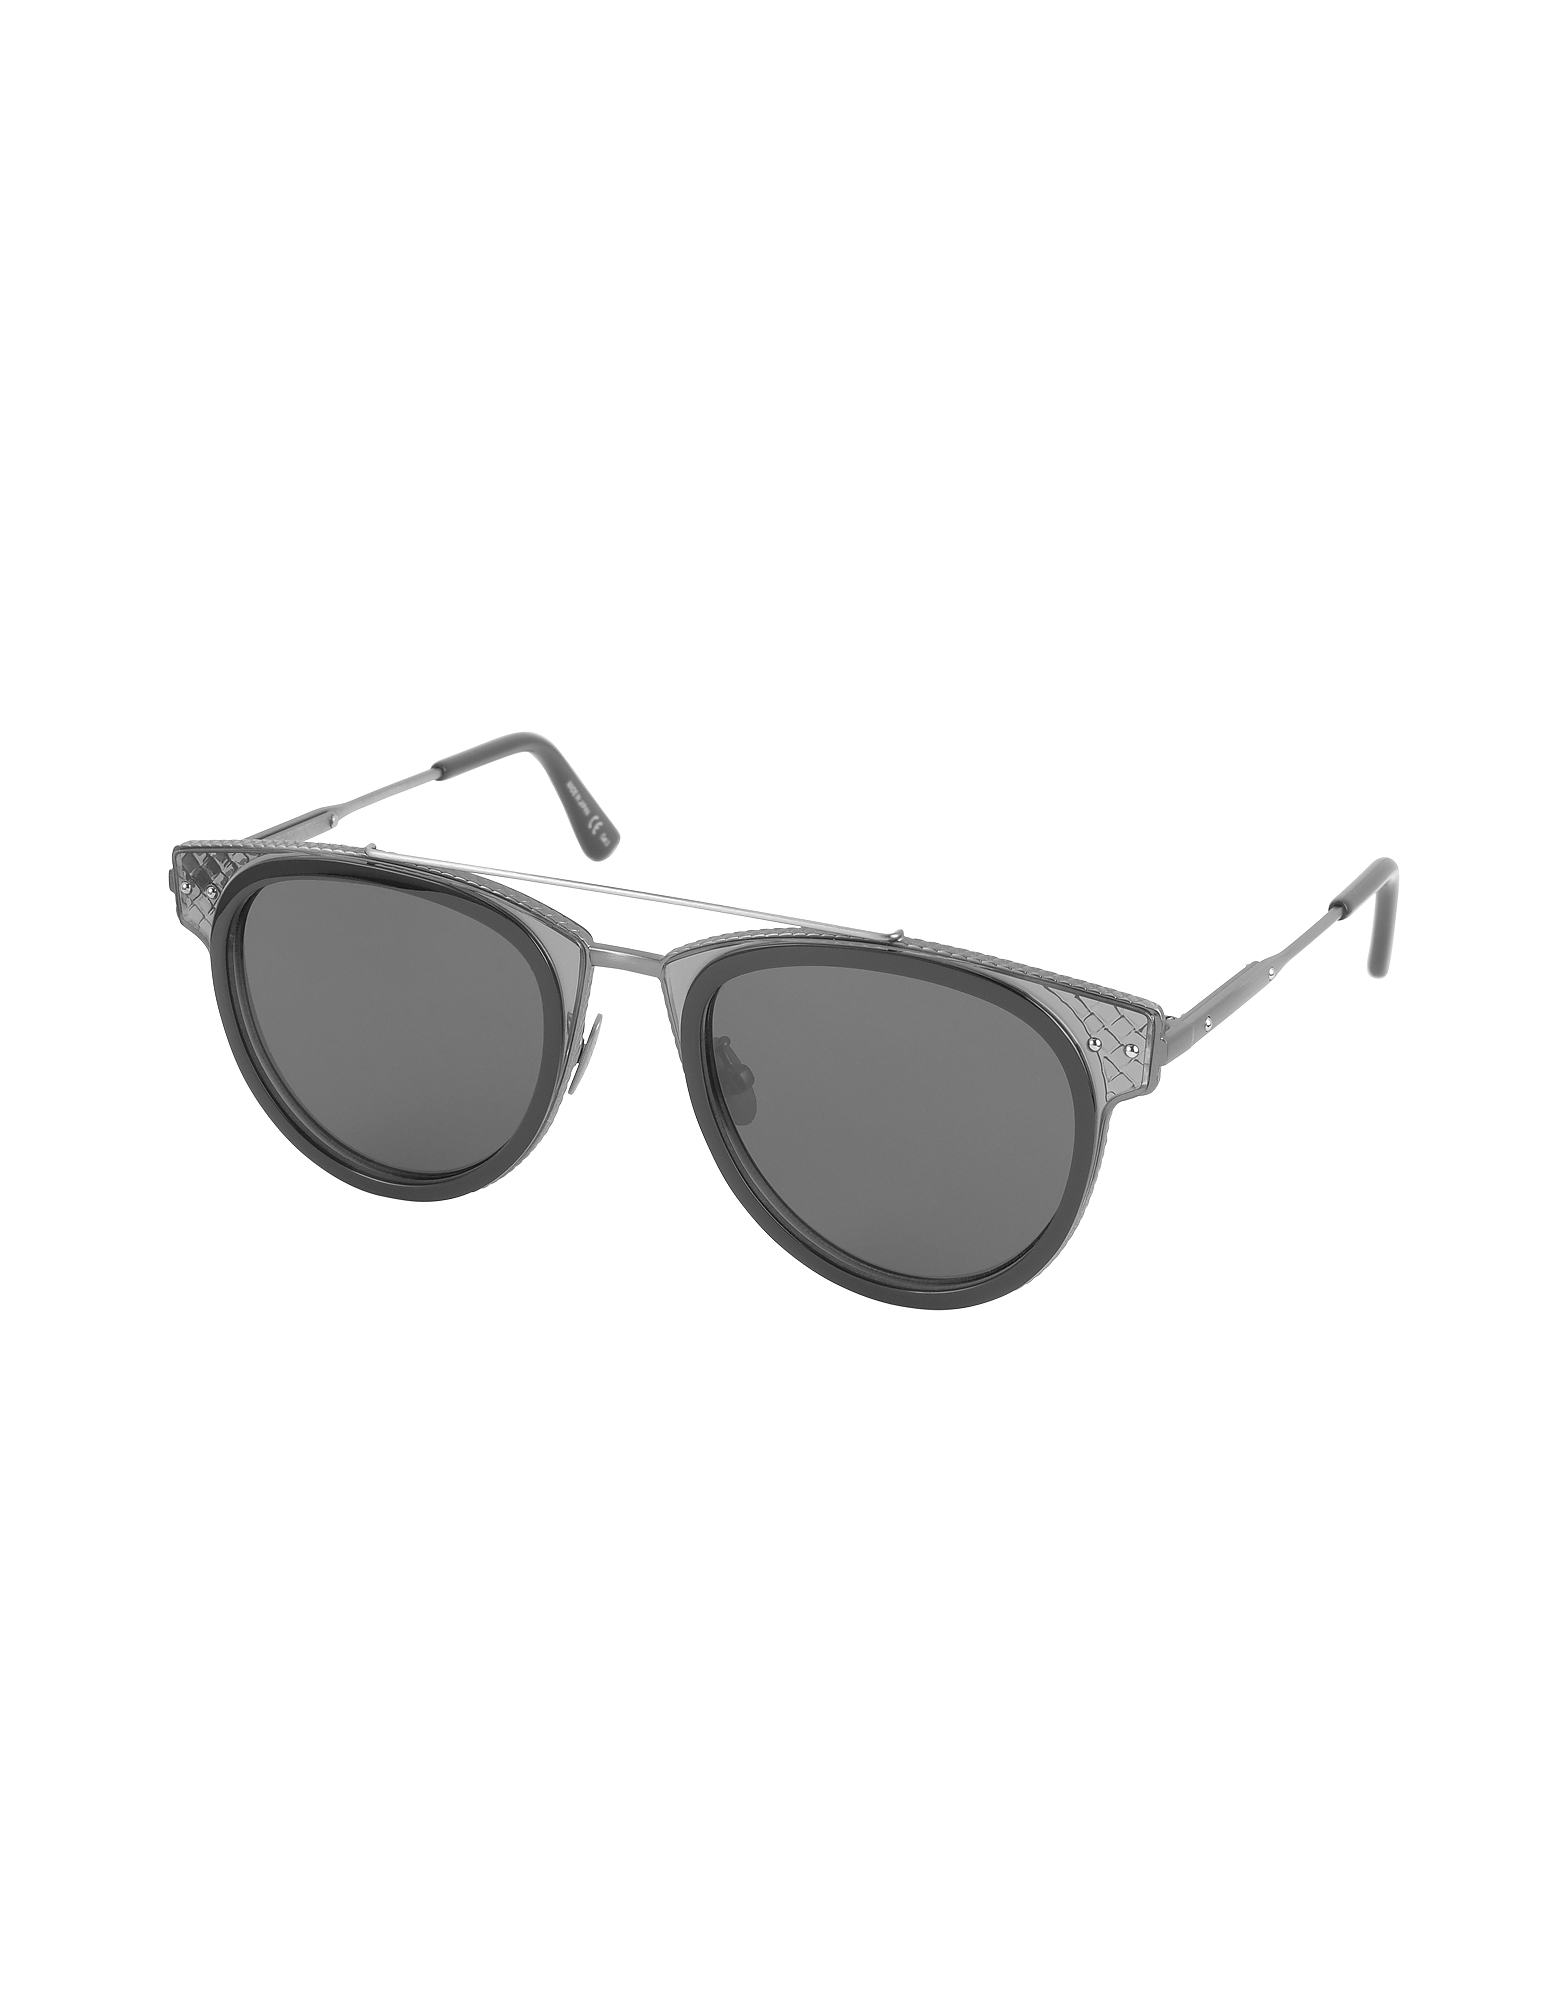 BV0123S Round Metal and Acetate Unisex Sunglasses от Forzieri.com INT